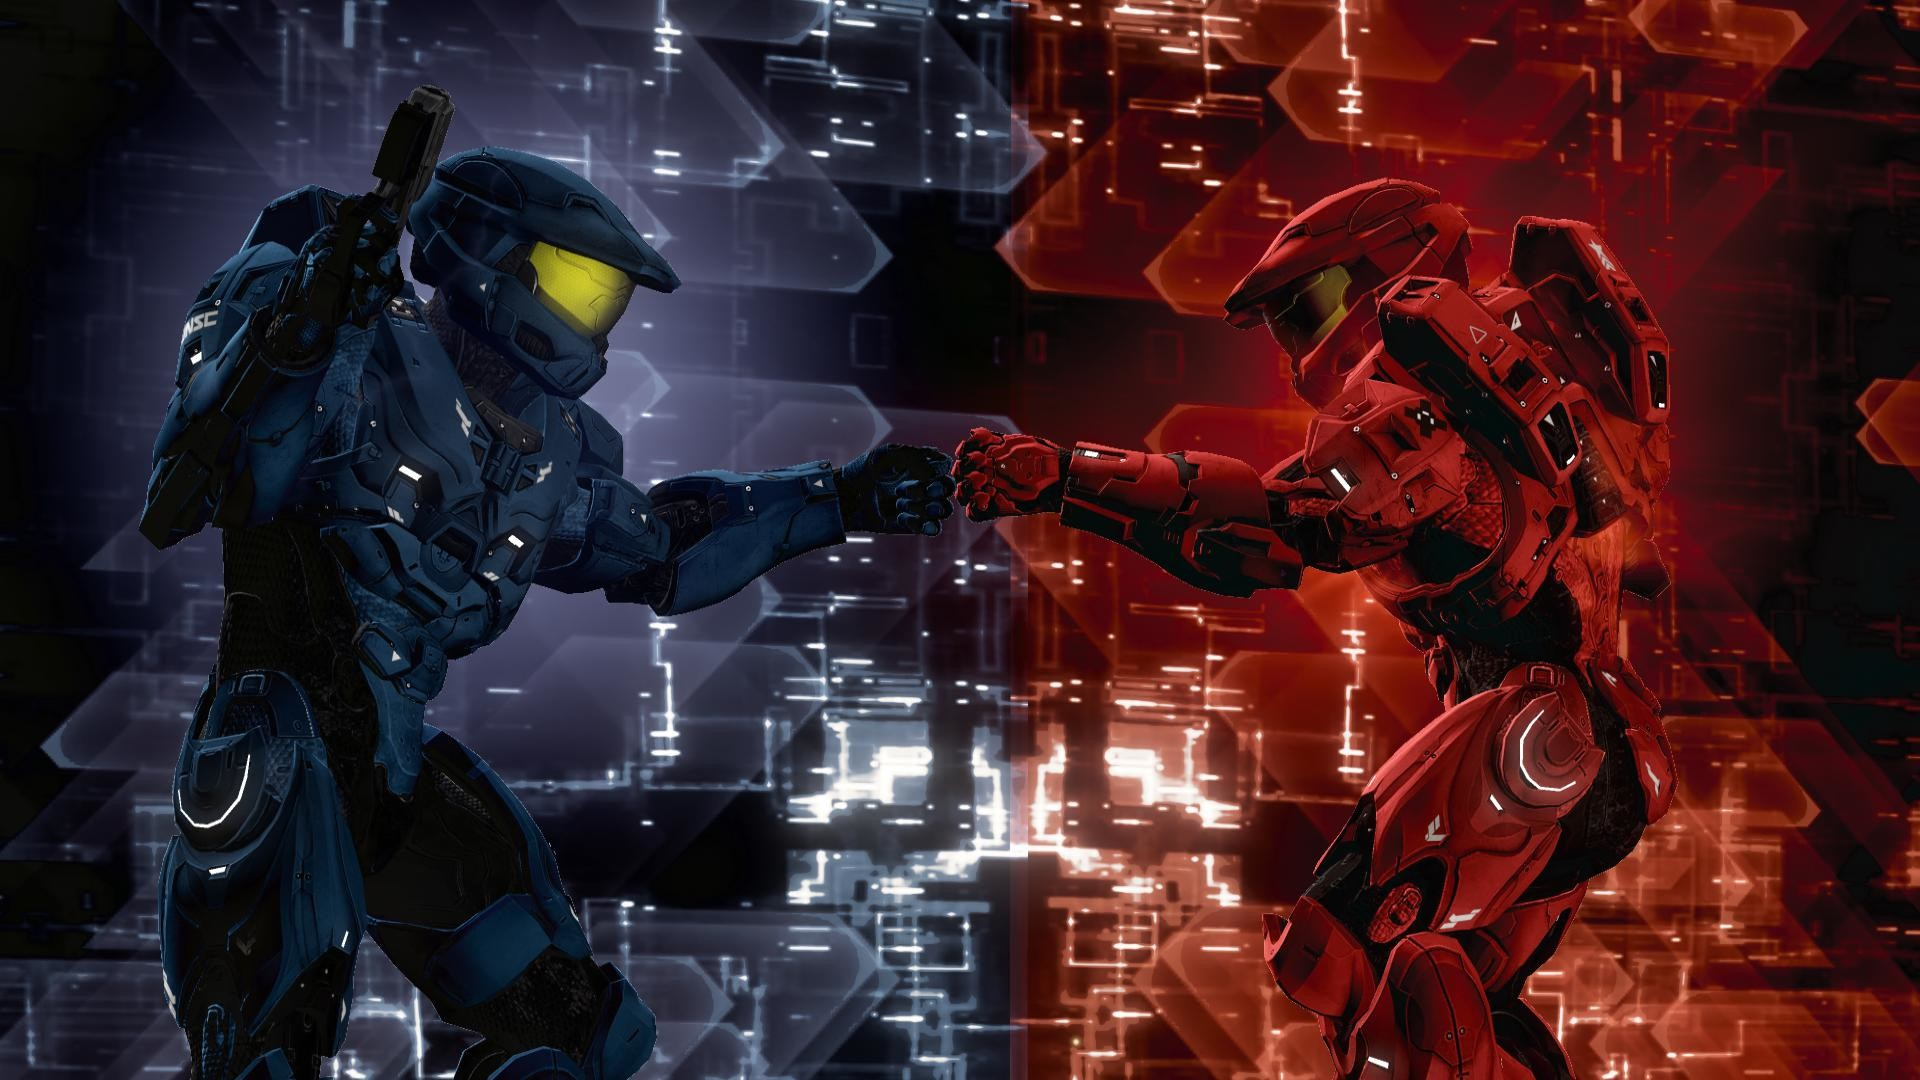 New Red vs Blue poster adapted for use as an iPhone wallpaper. – Imgur |  Download Wallpaper | Pinterest | Red vs blue and Wallpaper